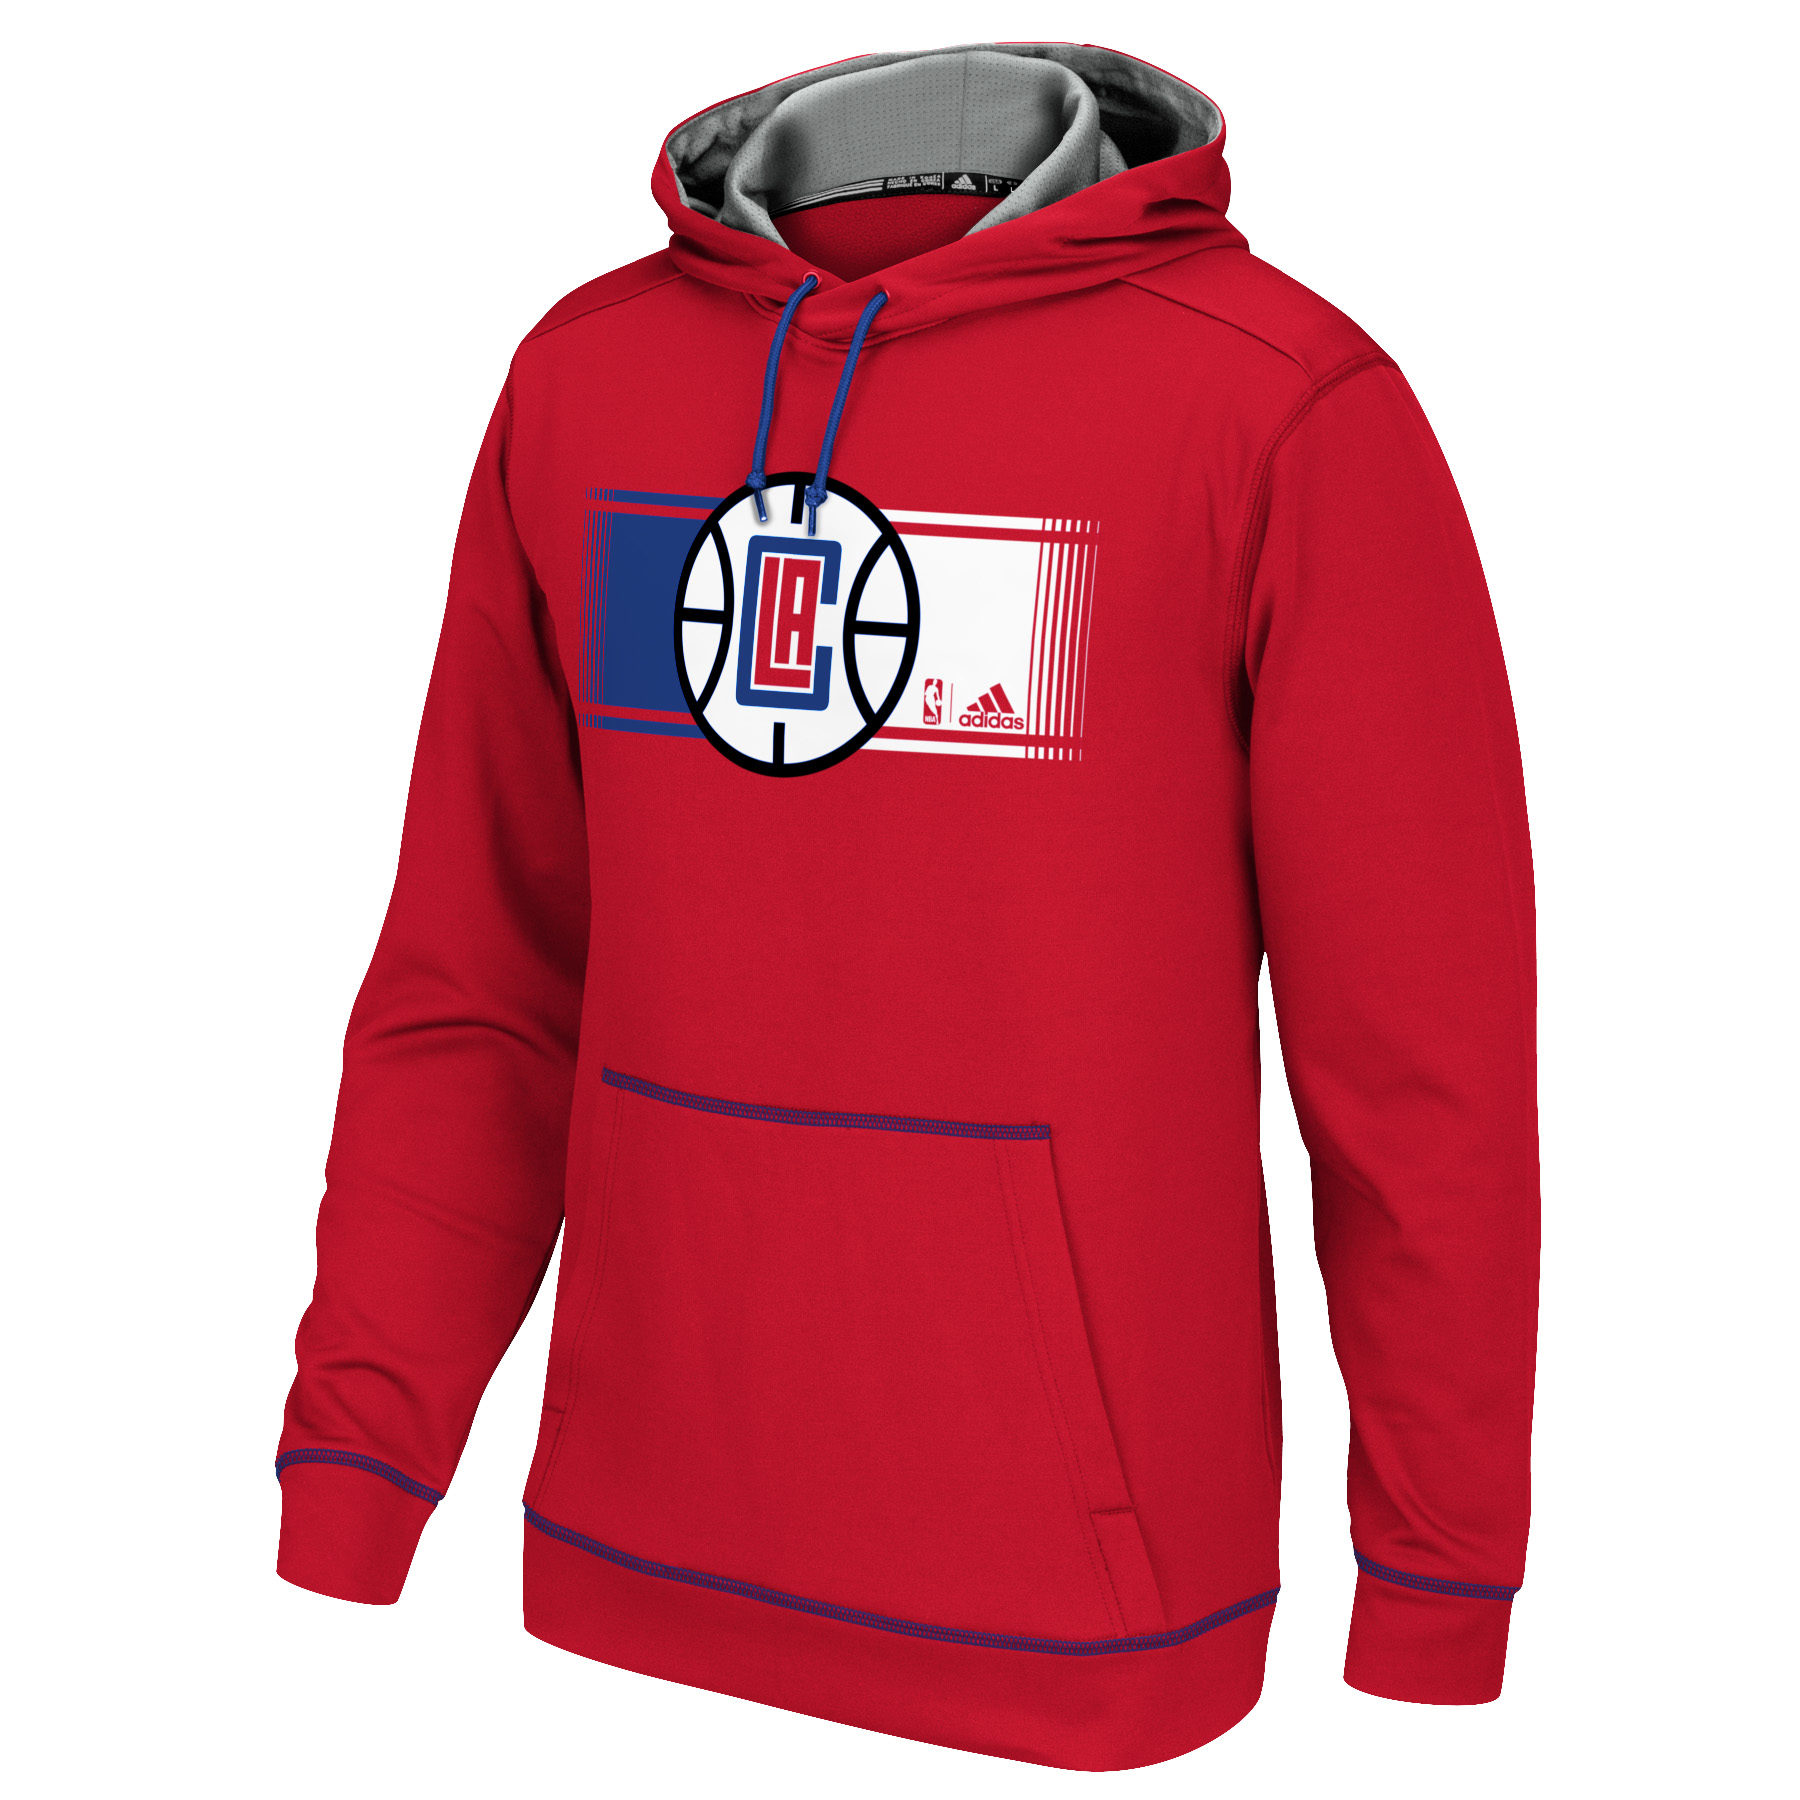 Adidas Los Angeles Clippers Tip Off Pullover Hoodie (Red)